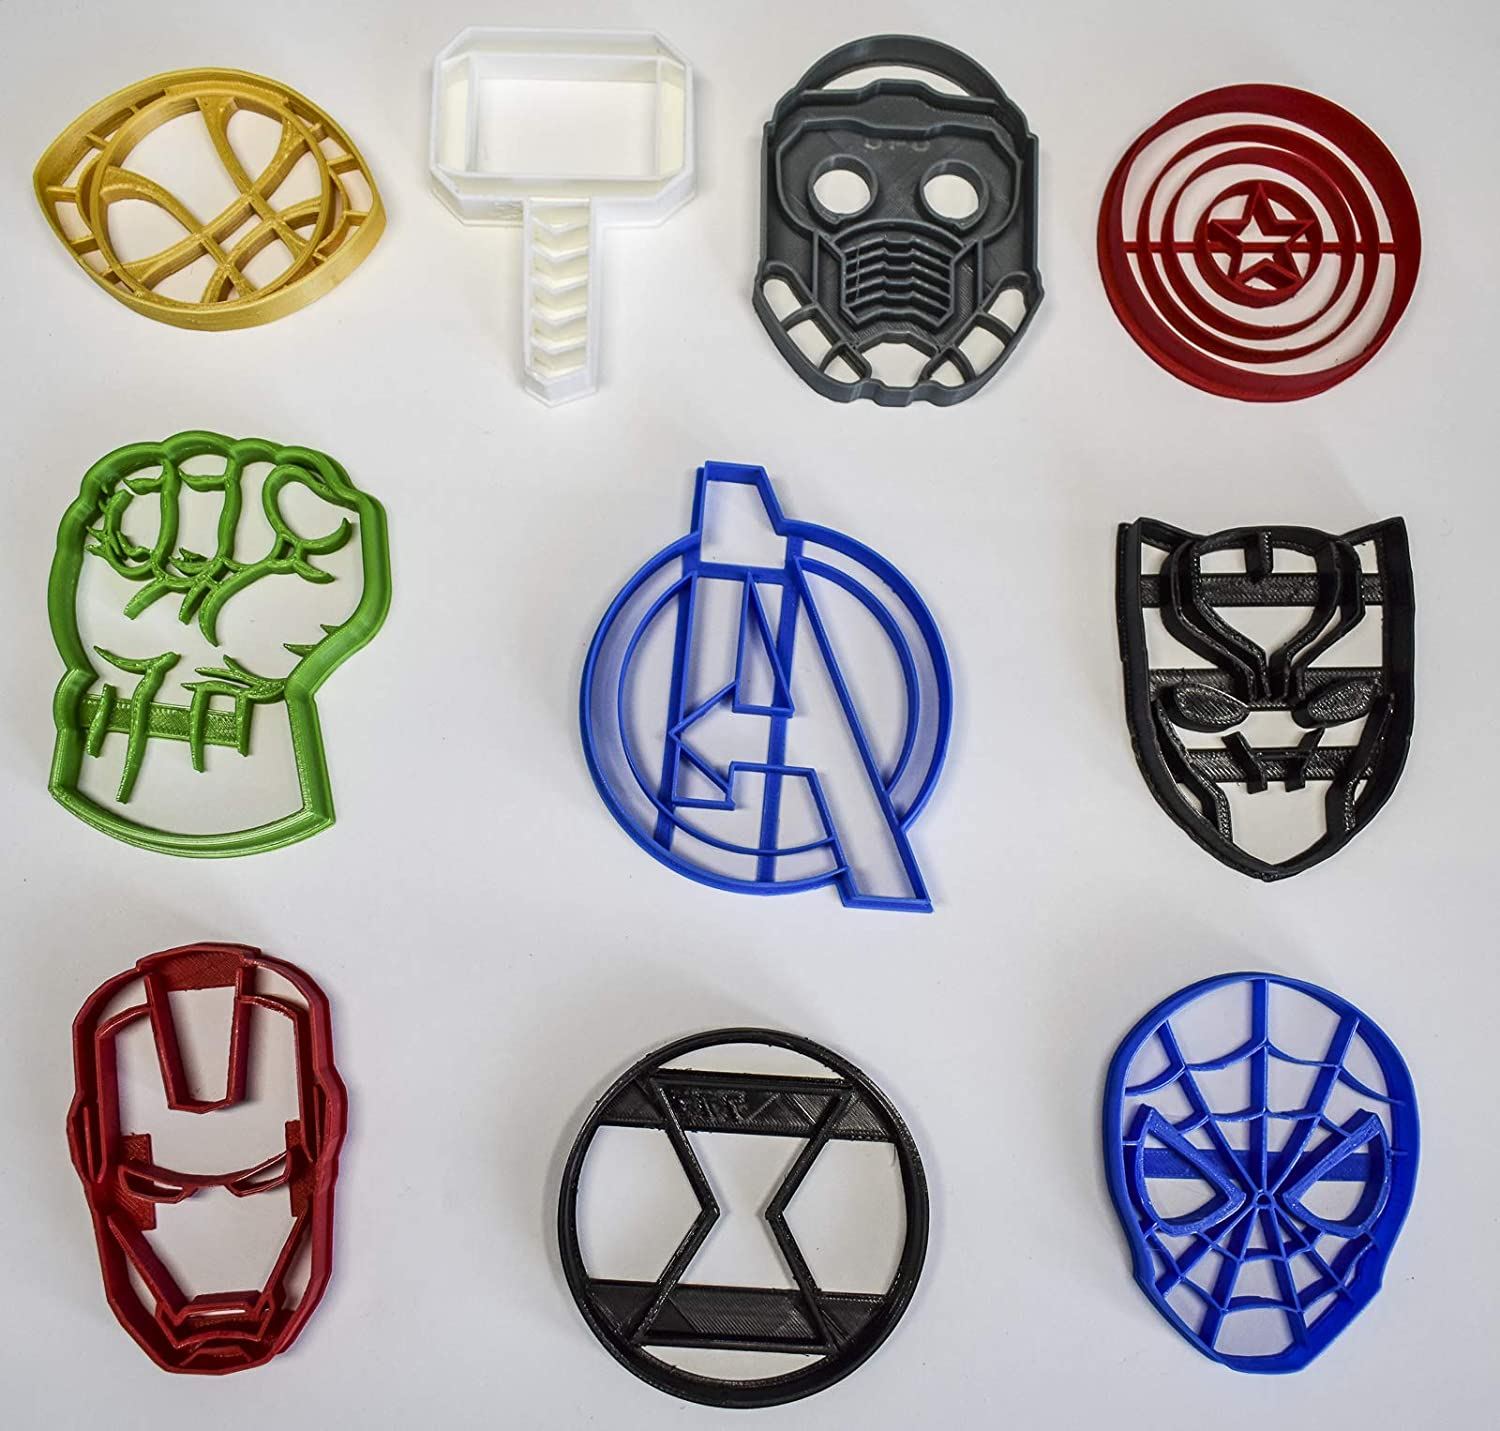 avengers character logos avengers infinity war marvel characters logos set of  special occasion  cookie cutters baking tool made in usa pr